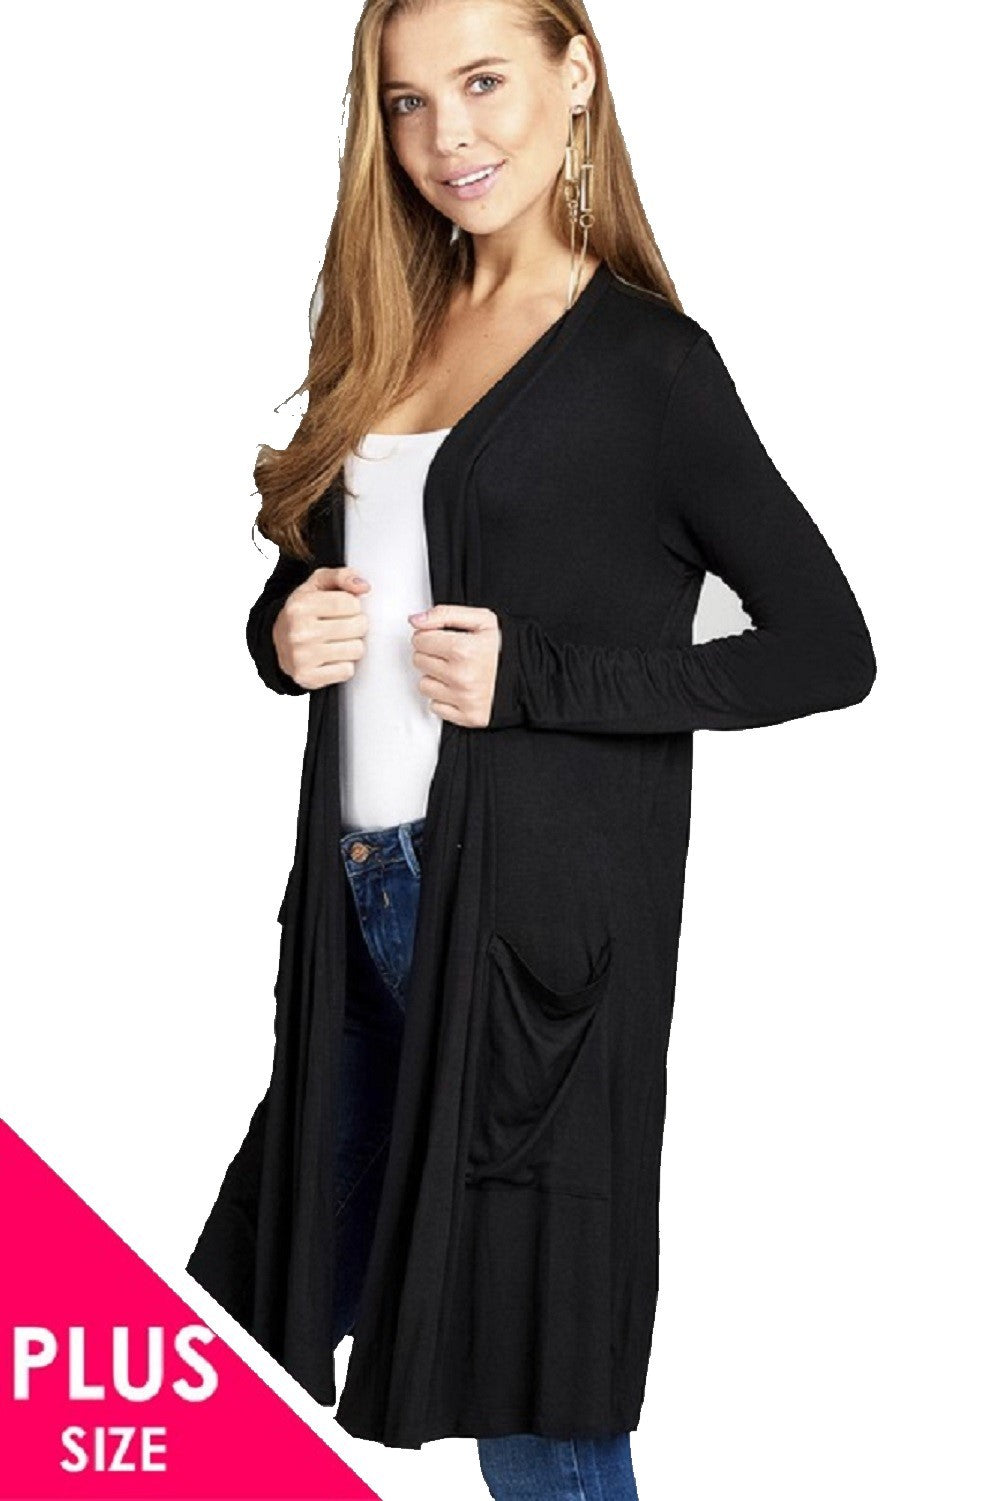 Open Front Long Length Long Sleeve Duster Cardigan with Pockets - SE Collegiate Gifts